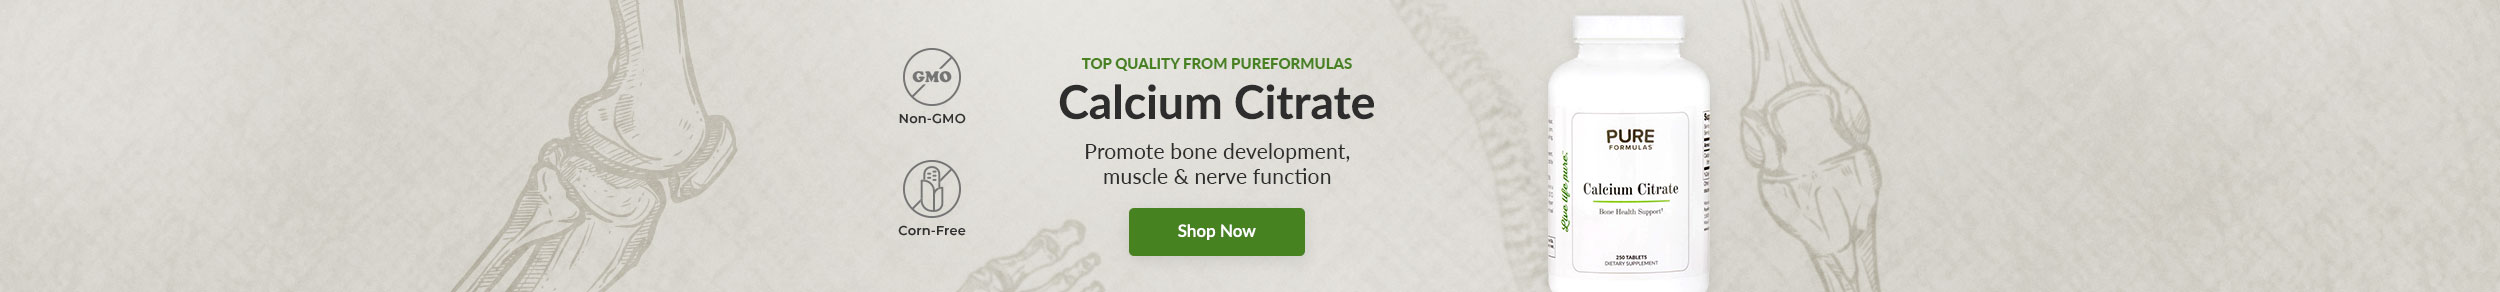 Top Quality from PureFormulas: Calcium Citrate - Promote bone development, muscle & nerve function